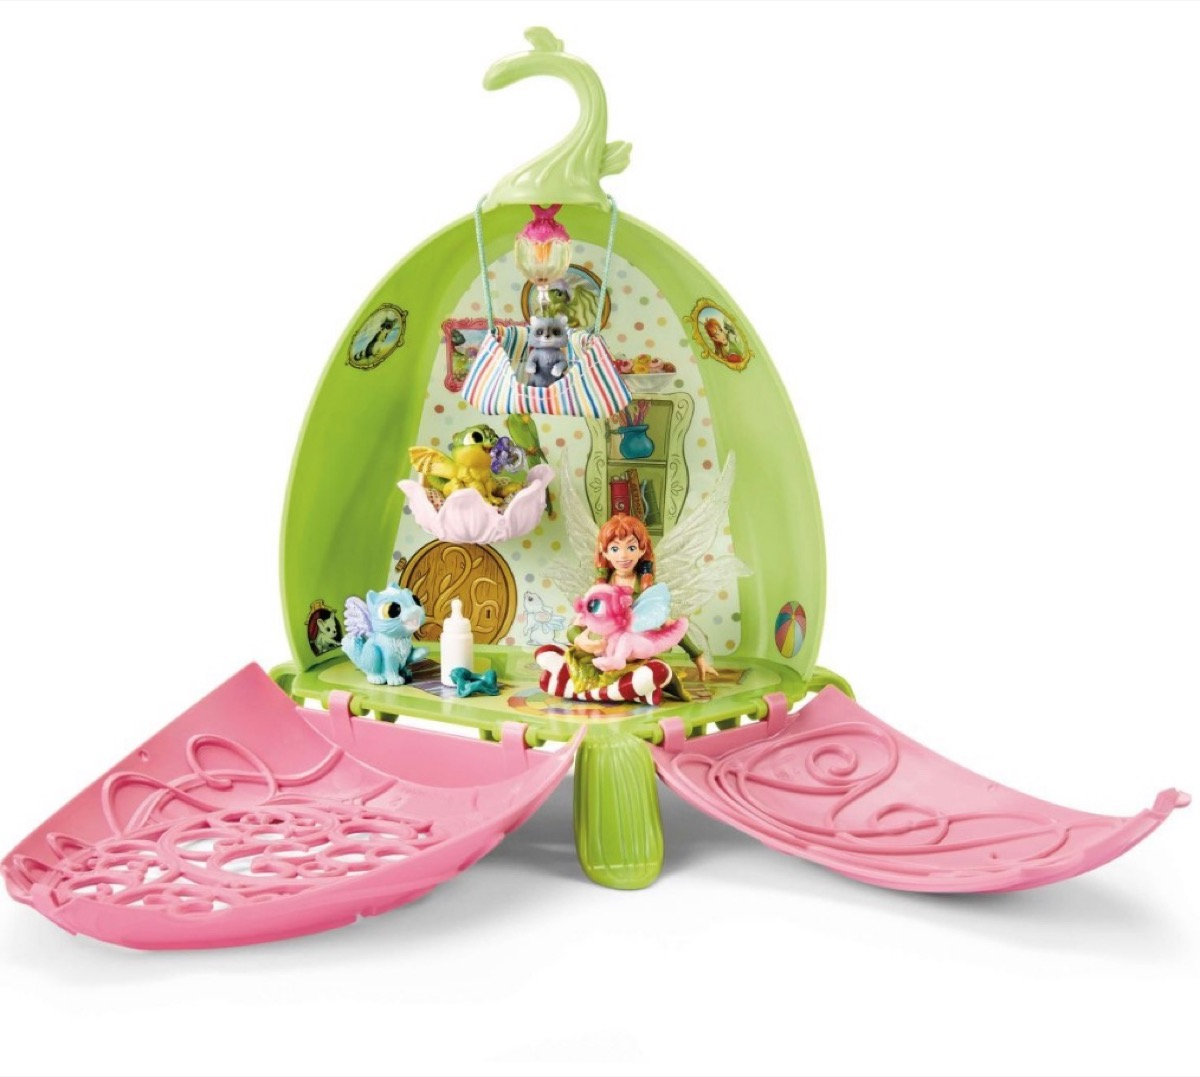 green and pink fairy house toy